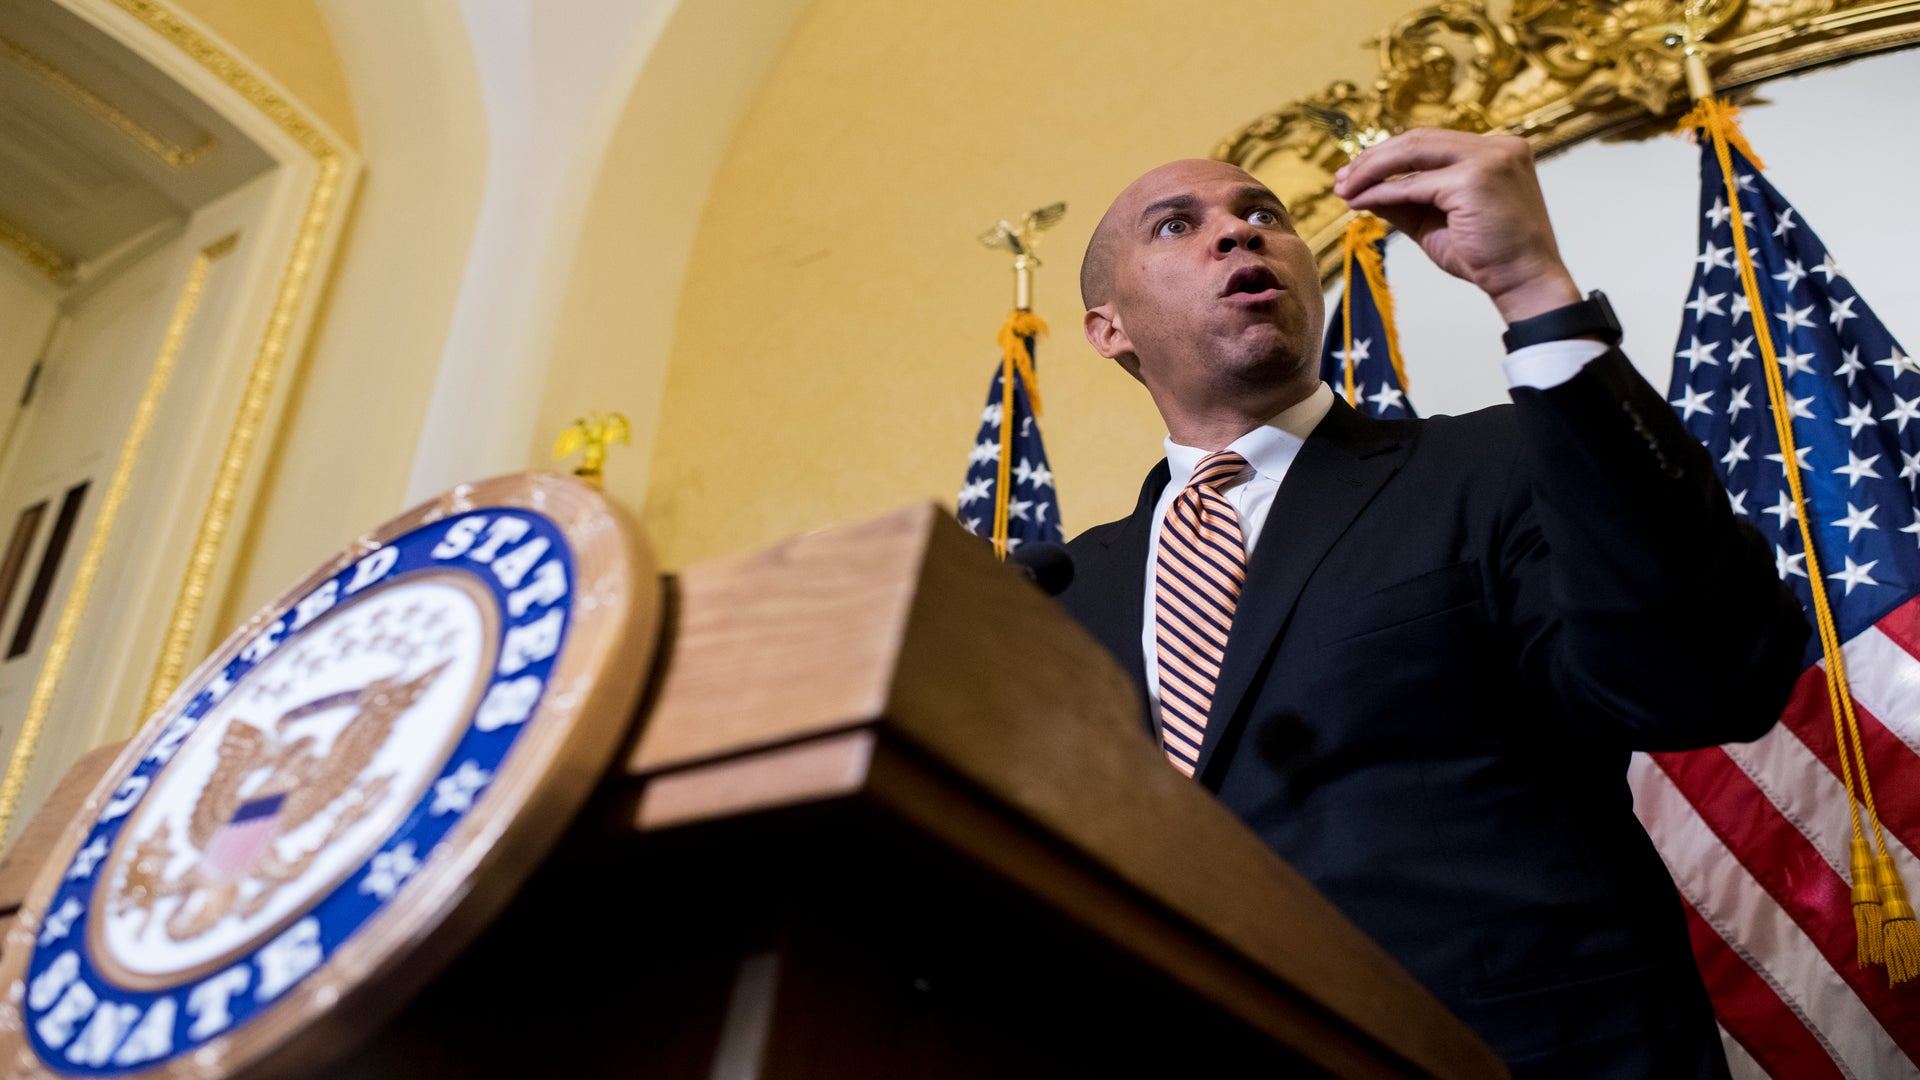 Sen. Cory Booker Wants To Remove Confederate Memorials From The U.S. Capitol Building